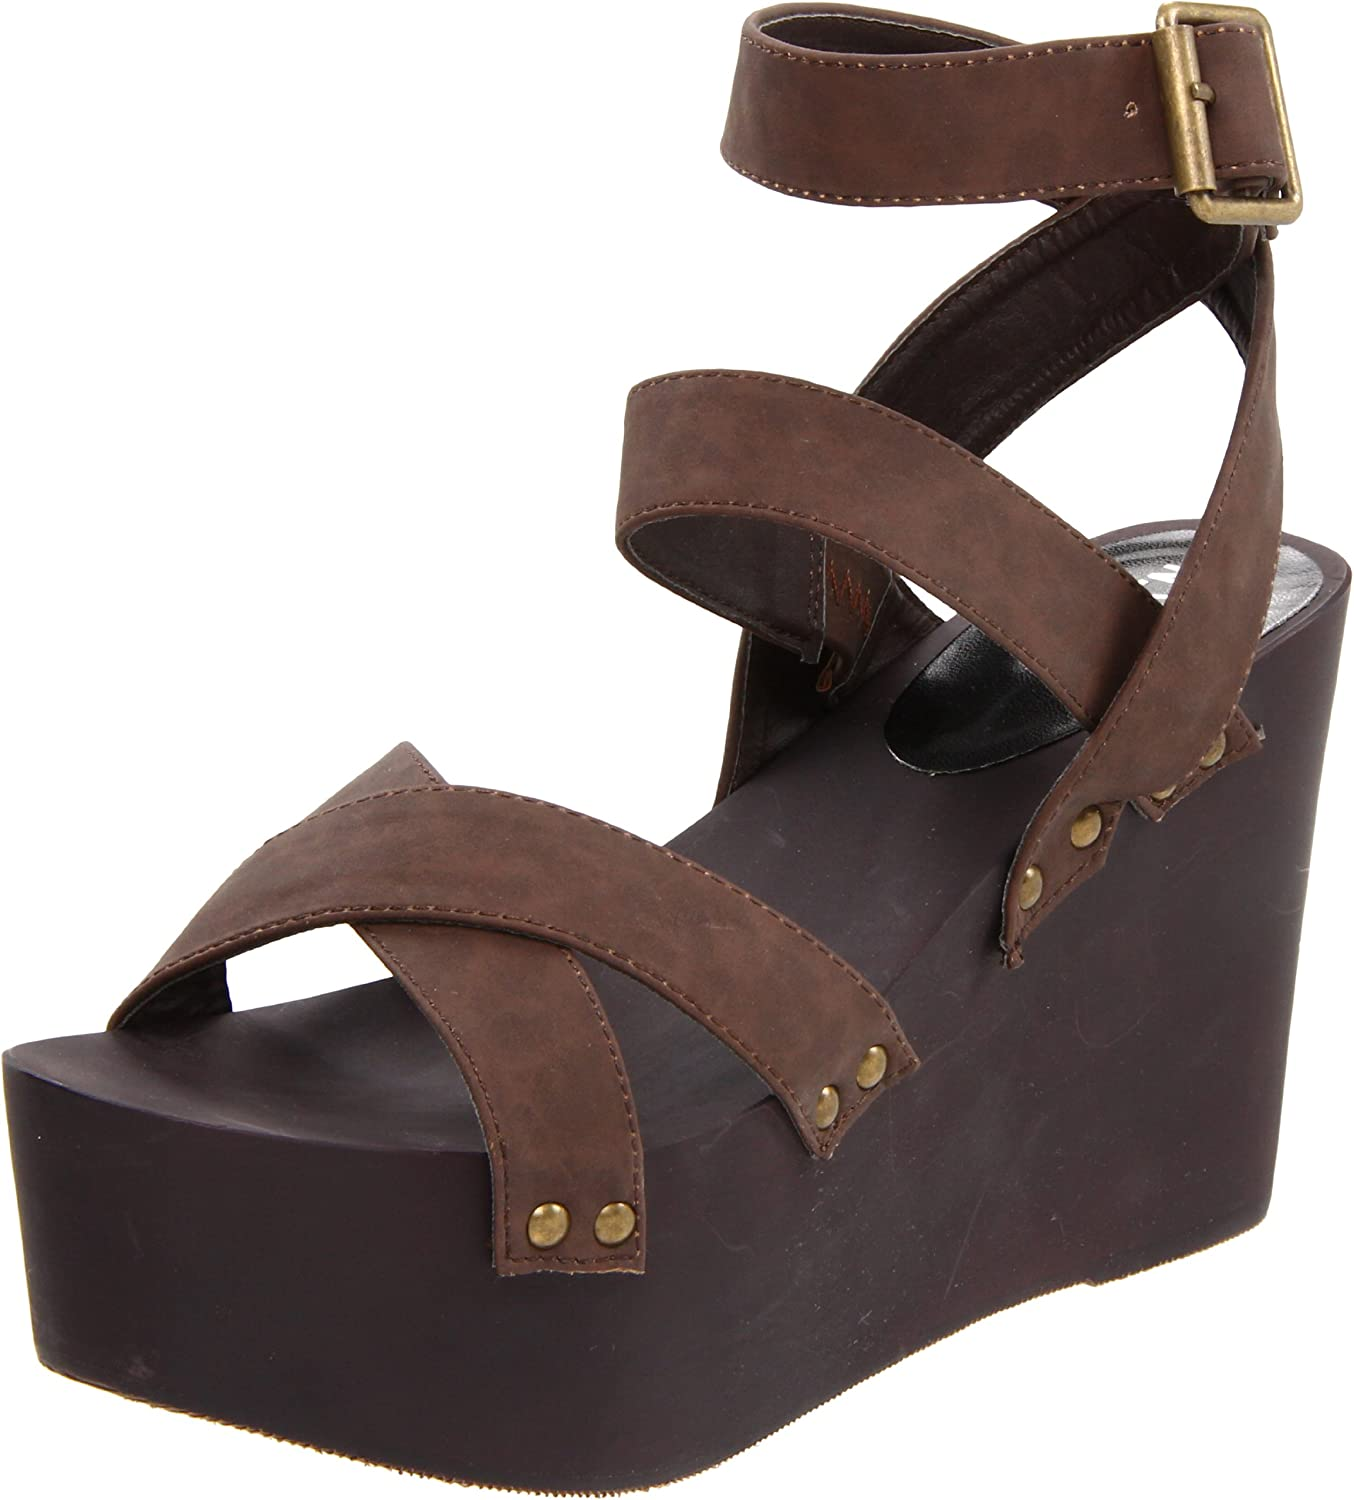 N.Y.L.A. Women's Free shipping anywhere in the nation Phoenix Mall Nema Sandal -Strap Ankle